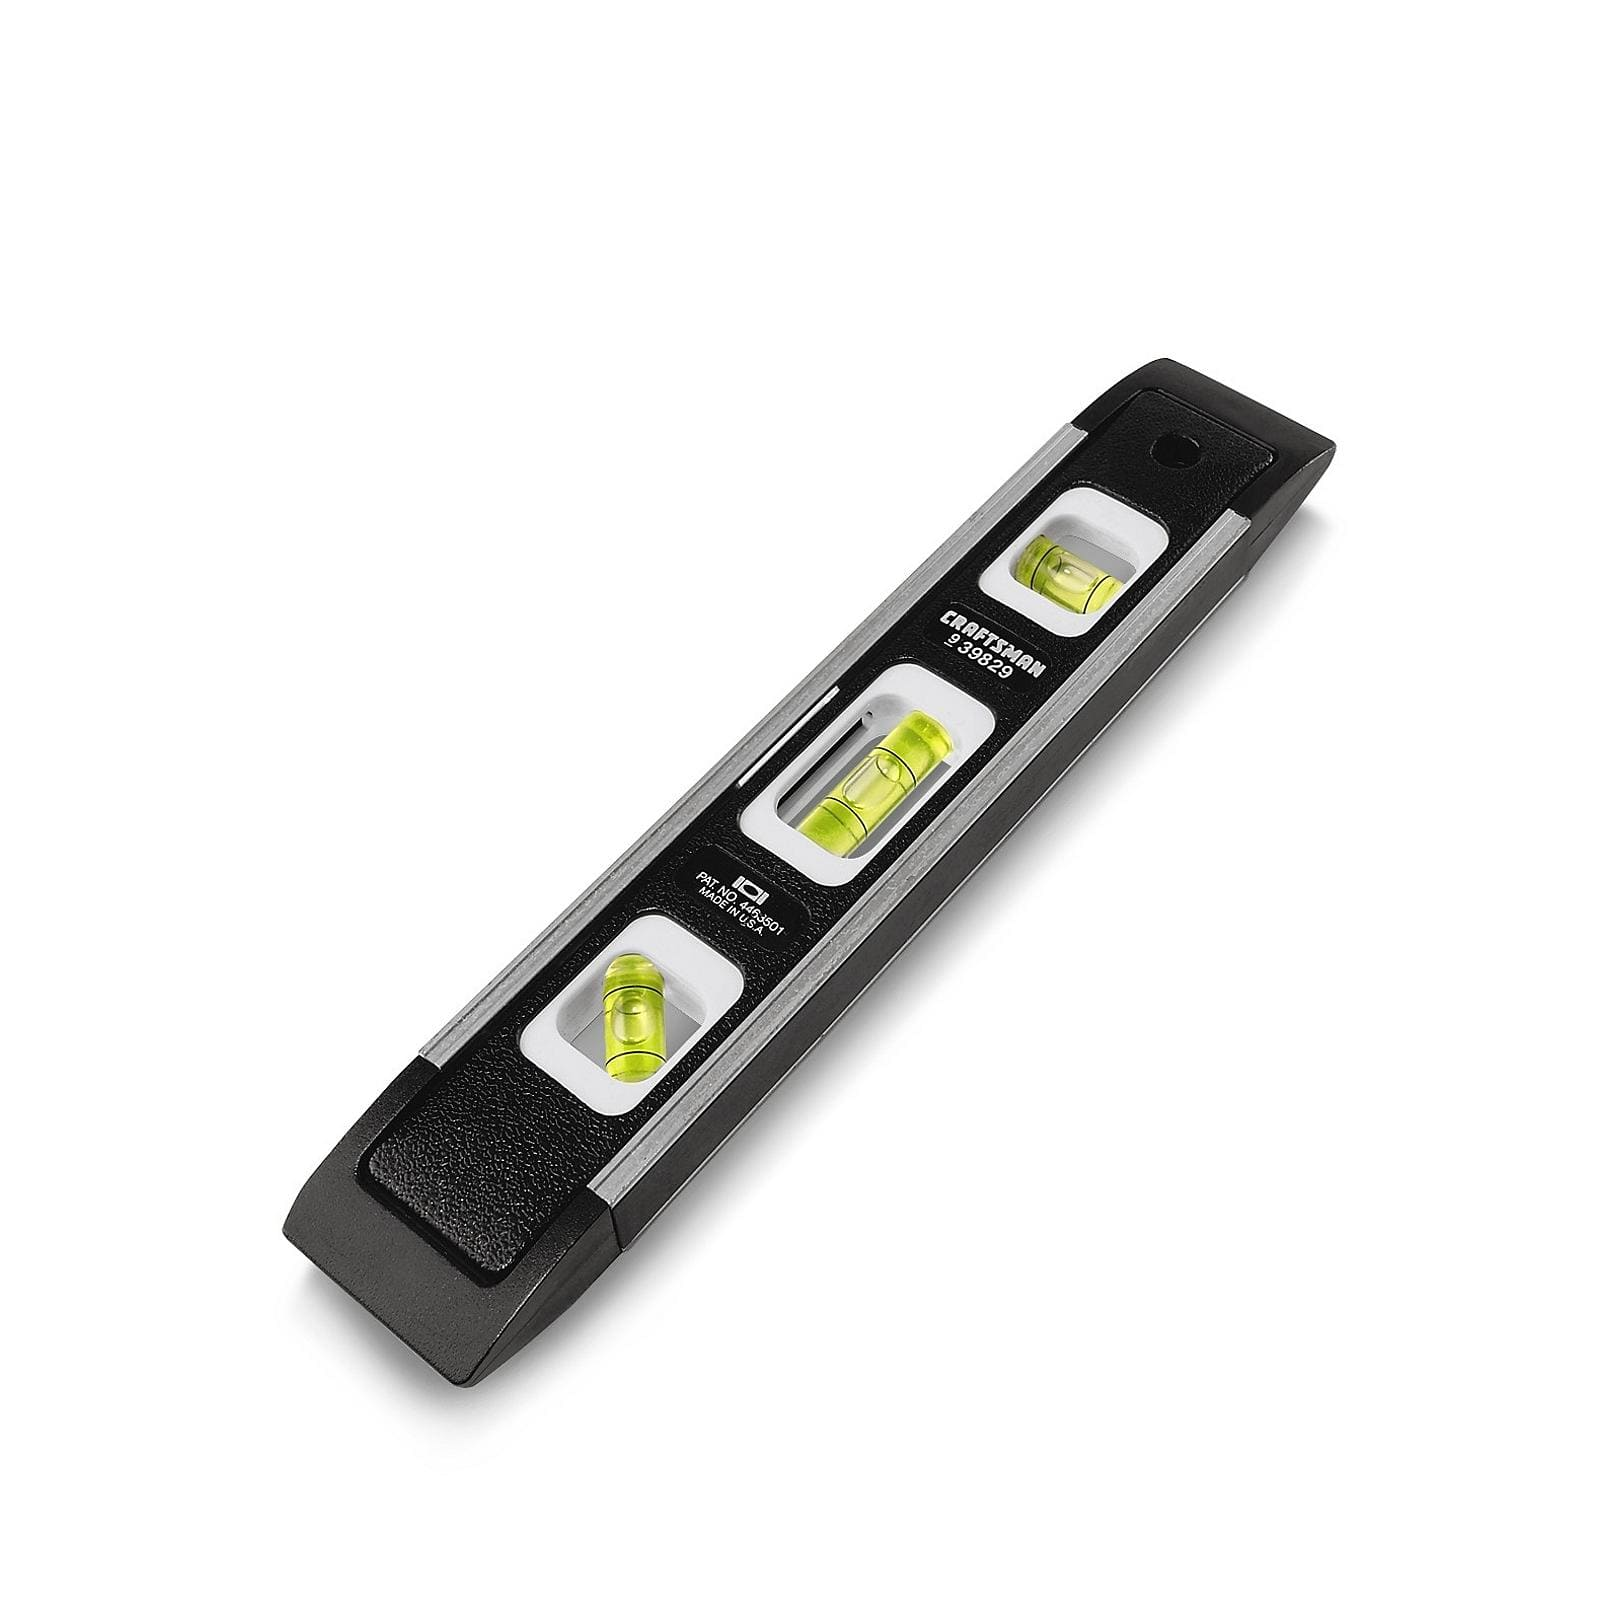 $5.99 Craftsman 9 in. Magnetic Torpedo Level @ Sears